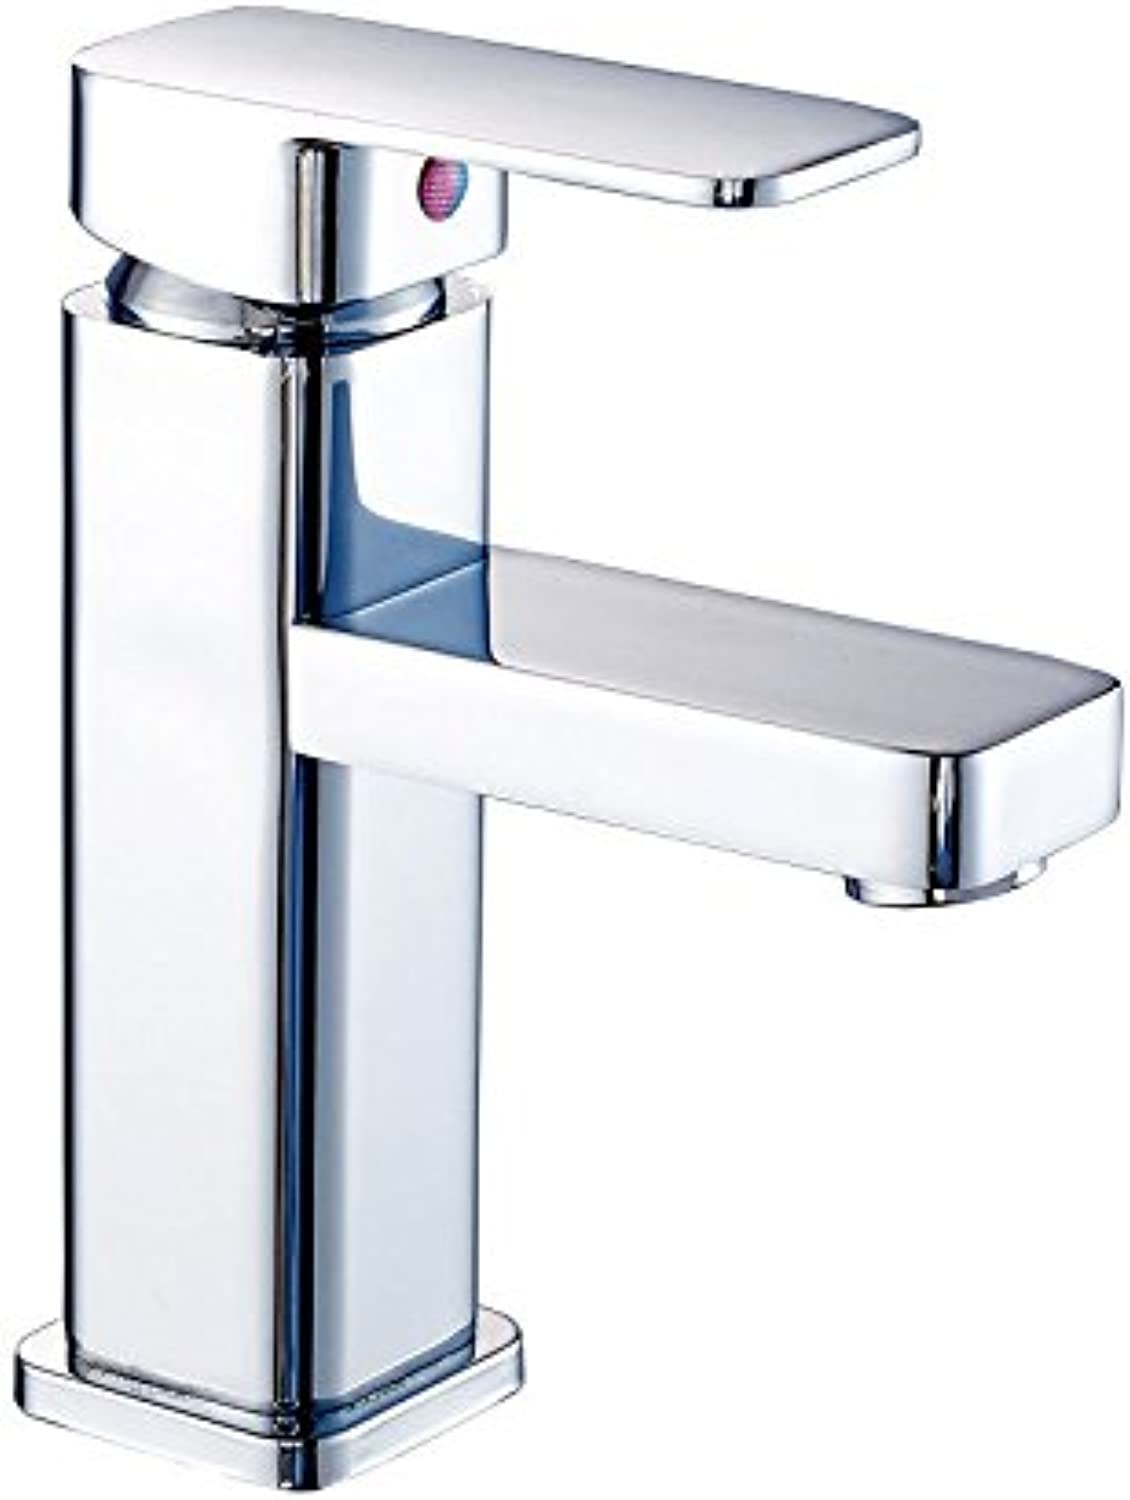 Copper hot and cold faucet basin